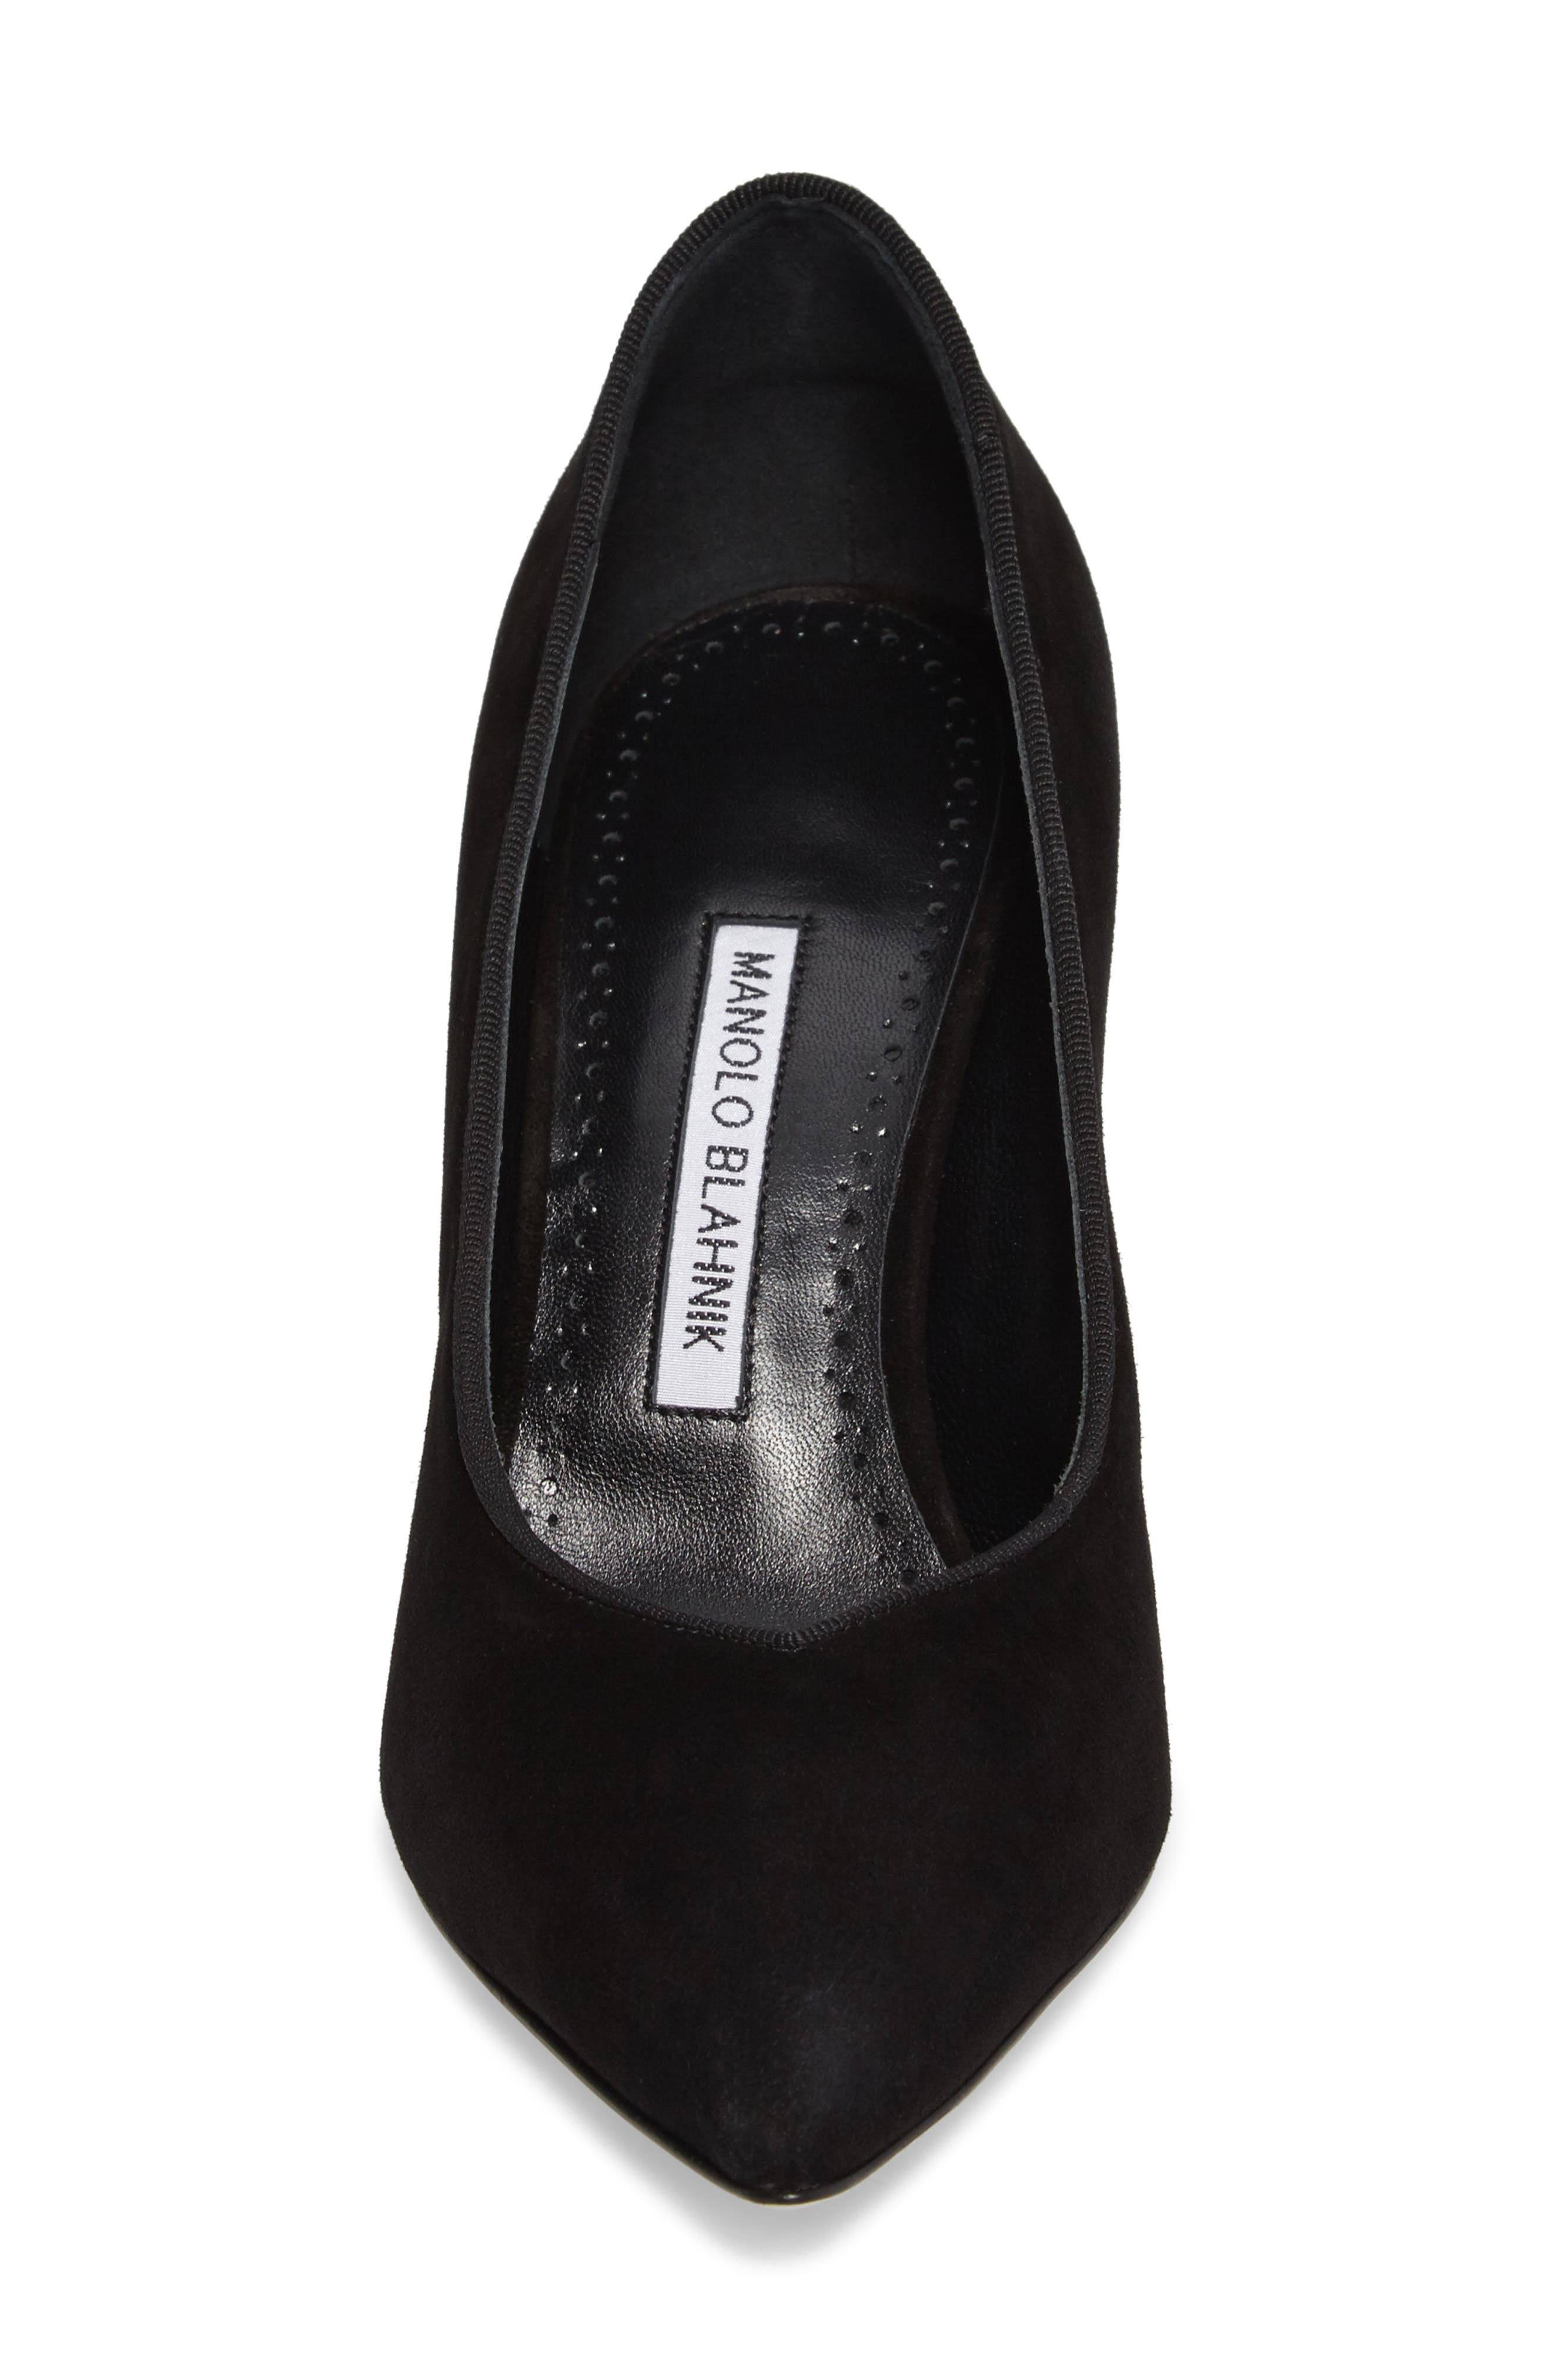 Urgenze Pointy Toe Pump,                             Alternate thumbnail 4, color,                             Black Suede